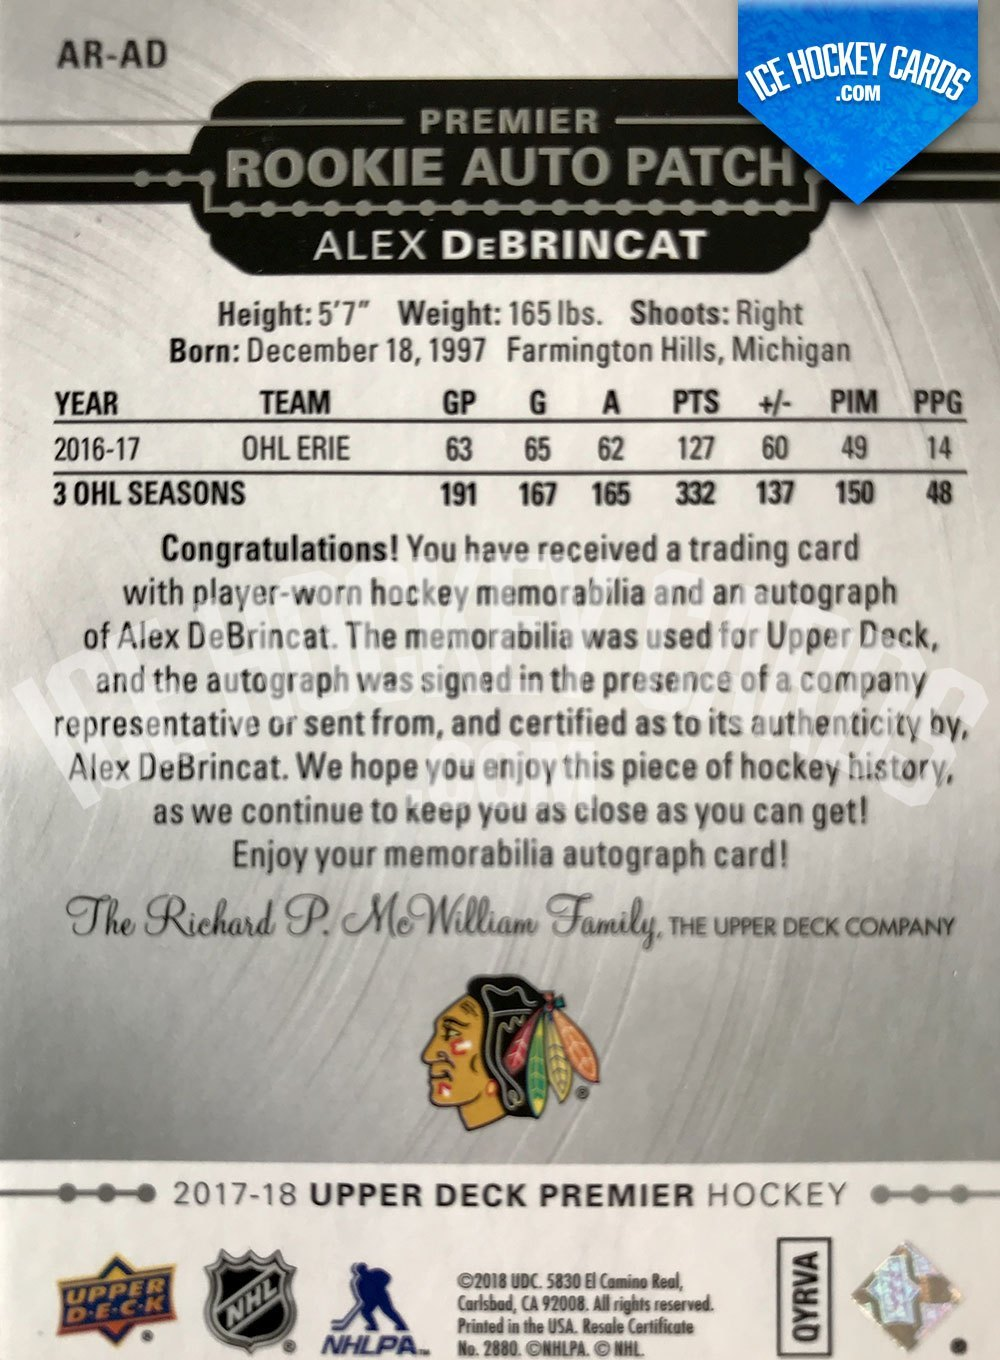 Upper Deck - Premier Hockey 2017-18 - Alex DeBrincat Premier Rookie Auto Patch RC back